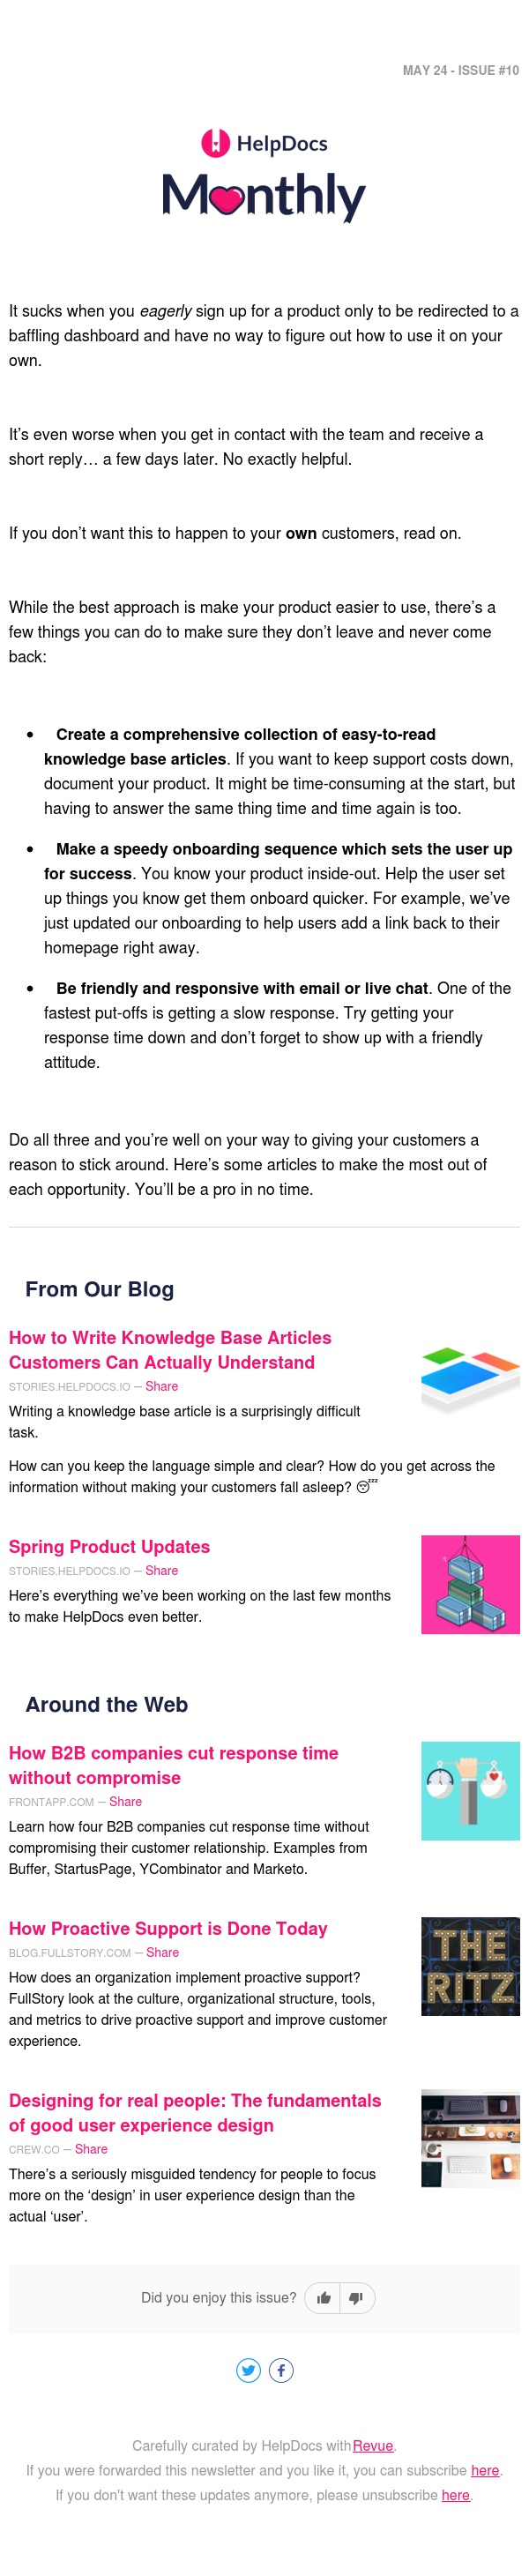 💯 Making Your Product Easy for Customers